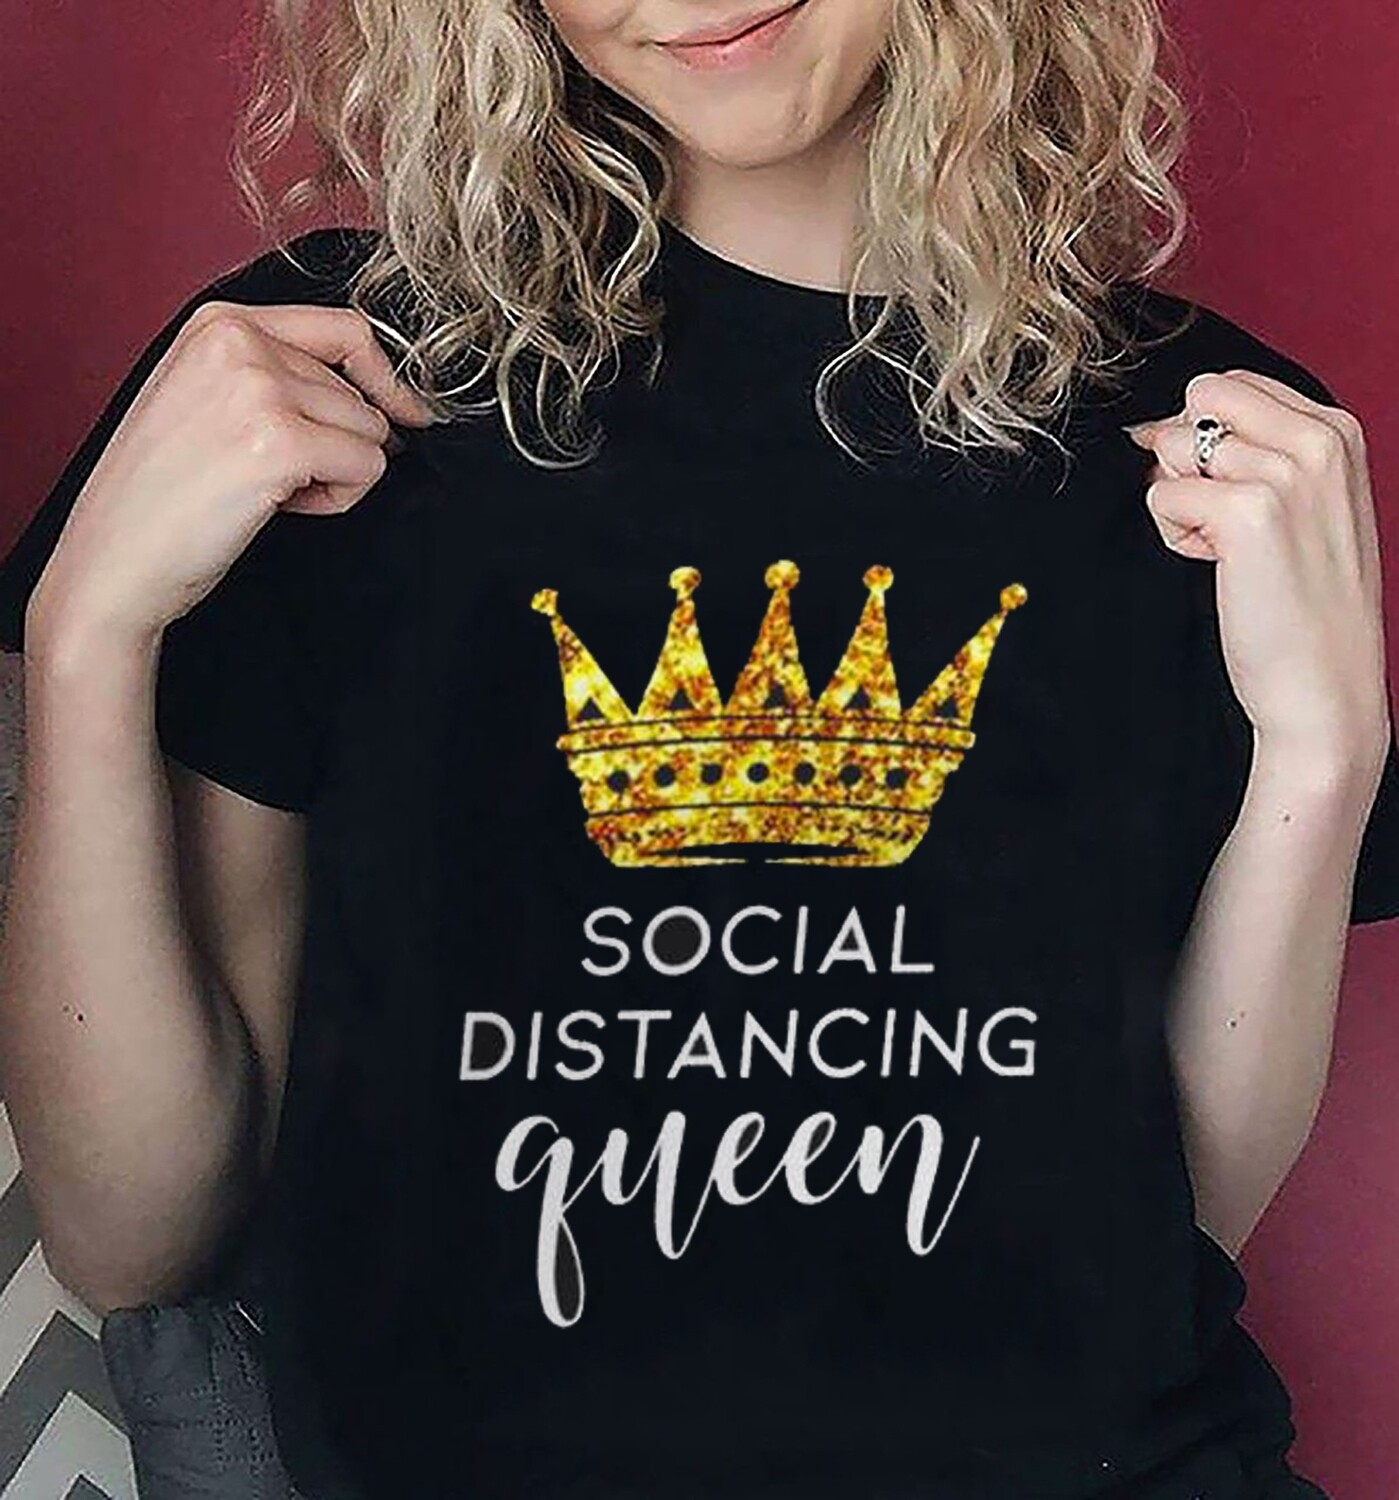 Quarantine Shirt, Social Distancing Queen Shirt, Wash Your Hands, Work From Home Shirt, Social Distancing, Stay Home, Introvert Mom T-Shirt